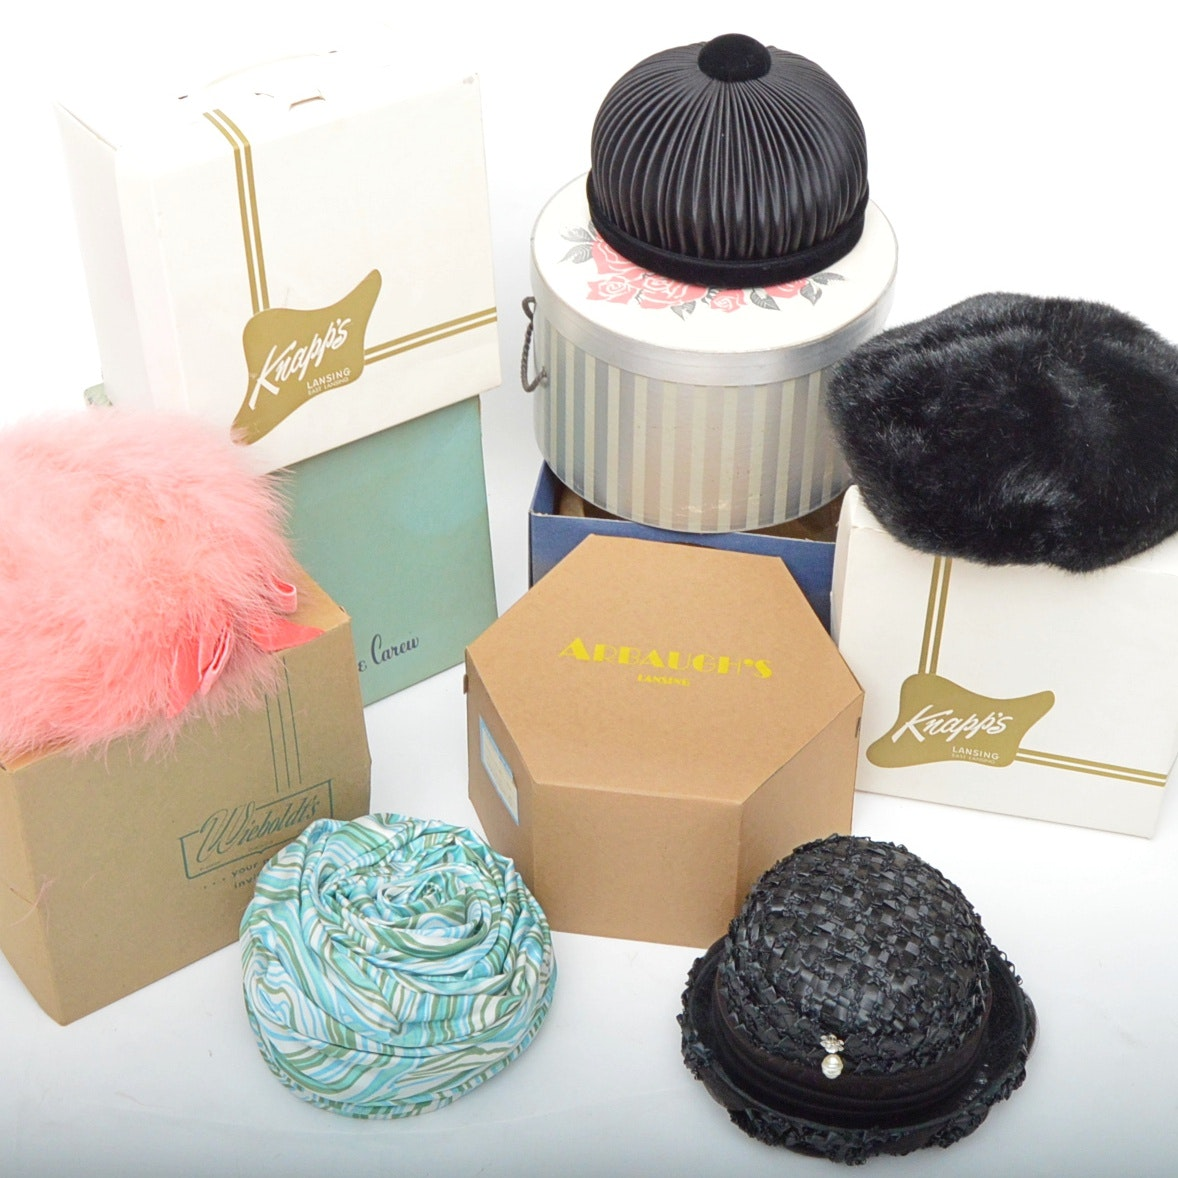 Vintage Women's Hat and Hatboxes